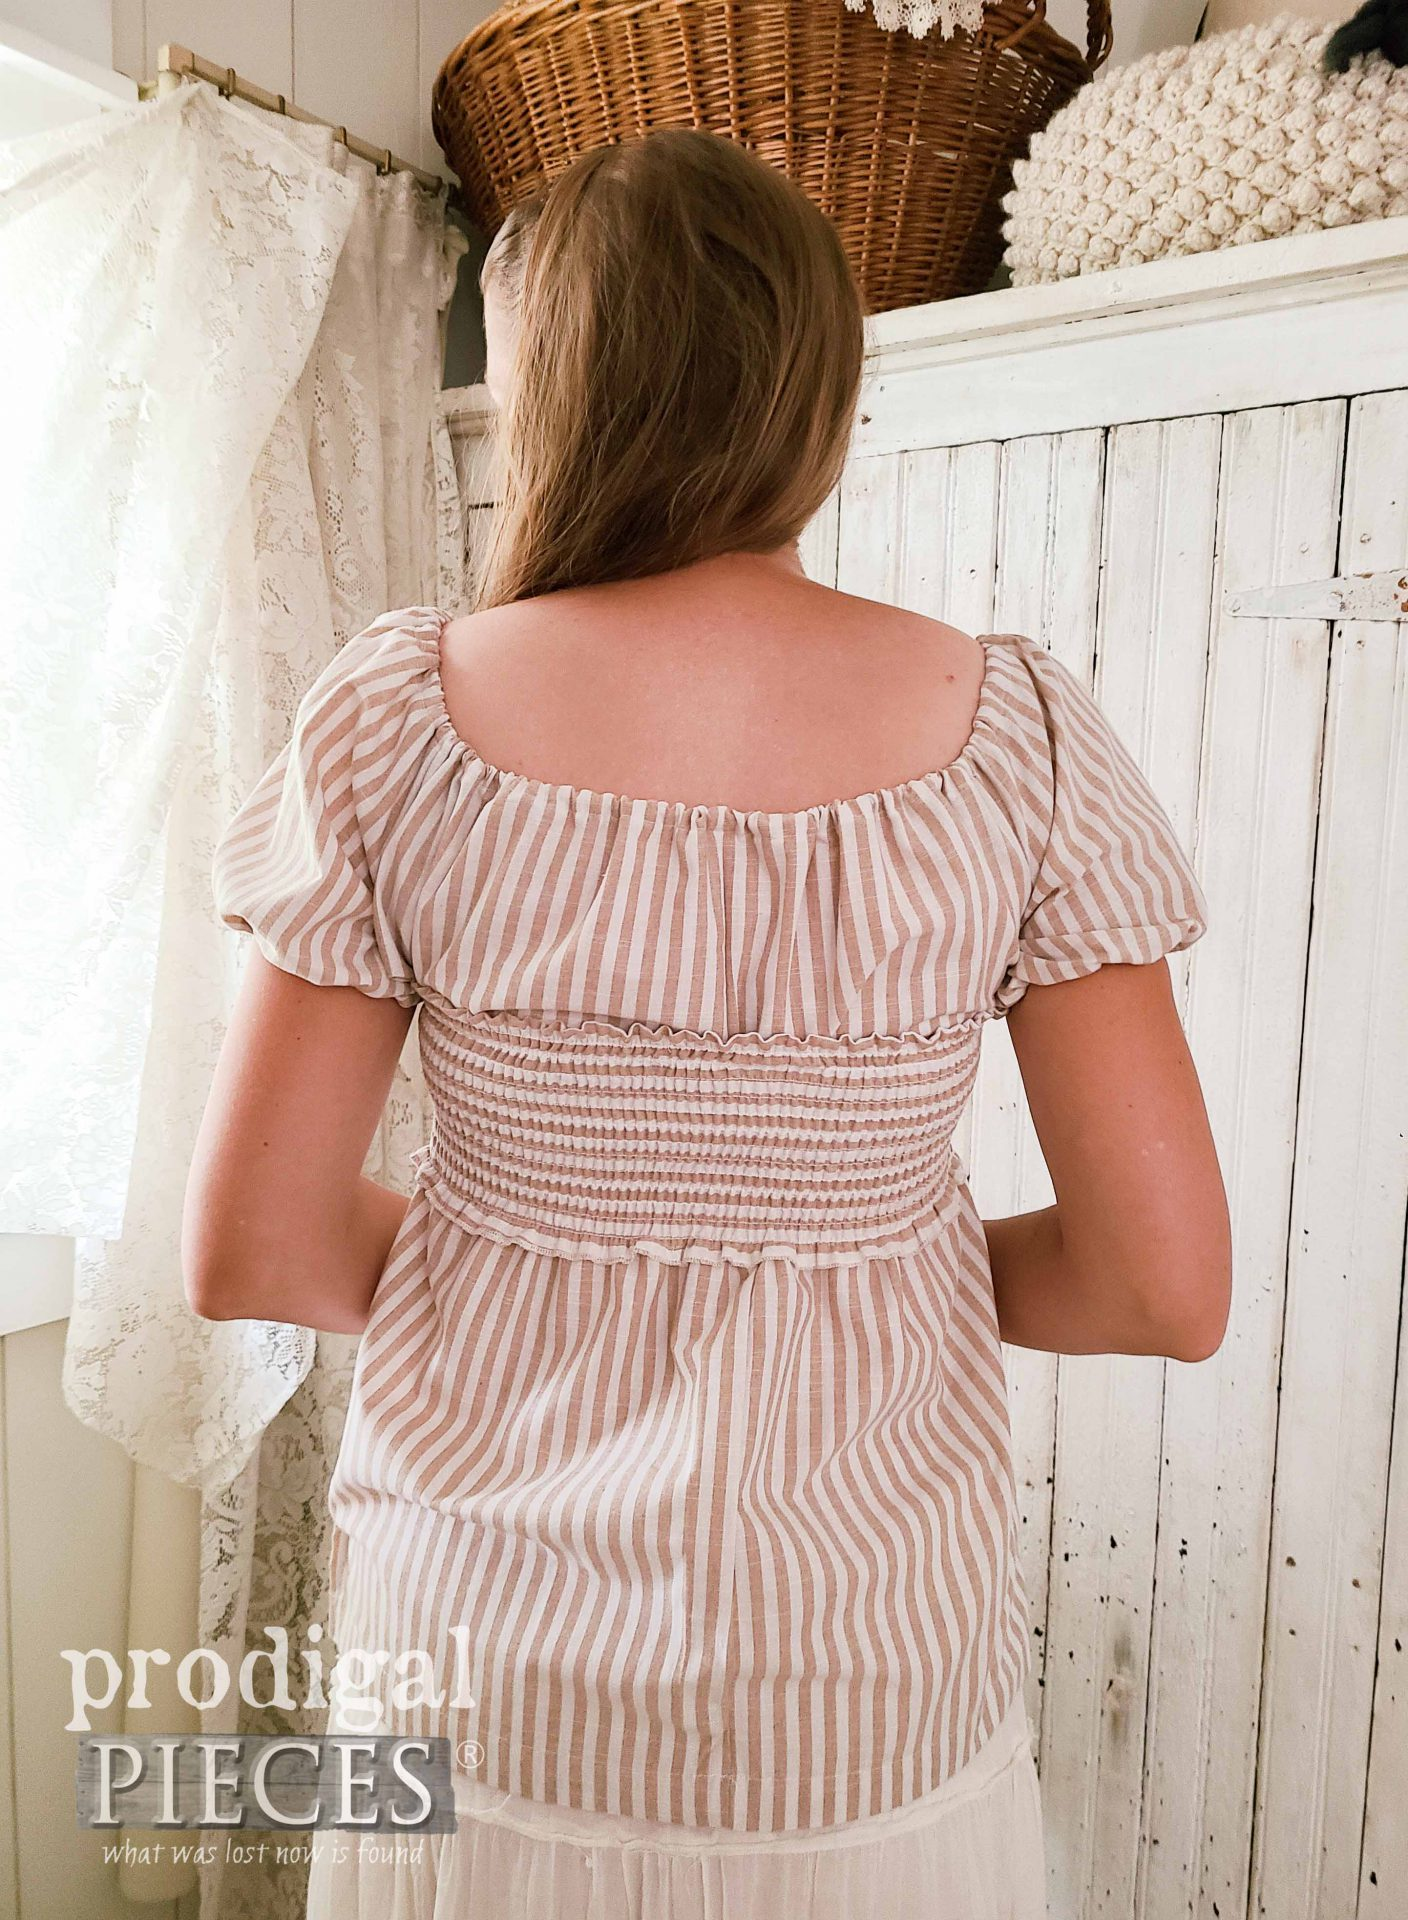 Ladies' Smocked Blouse Back View by Larissa of Prodigal Pieces | prodigalpieces.com #prodigalpieces #fashion #refashion #handmade #style